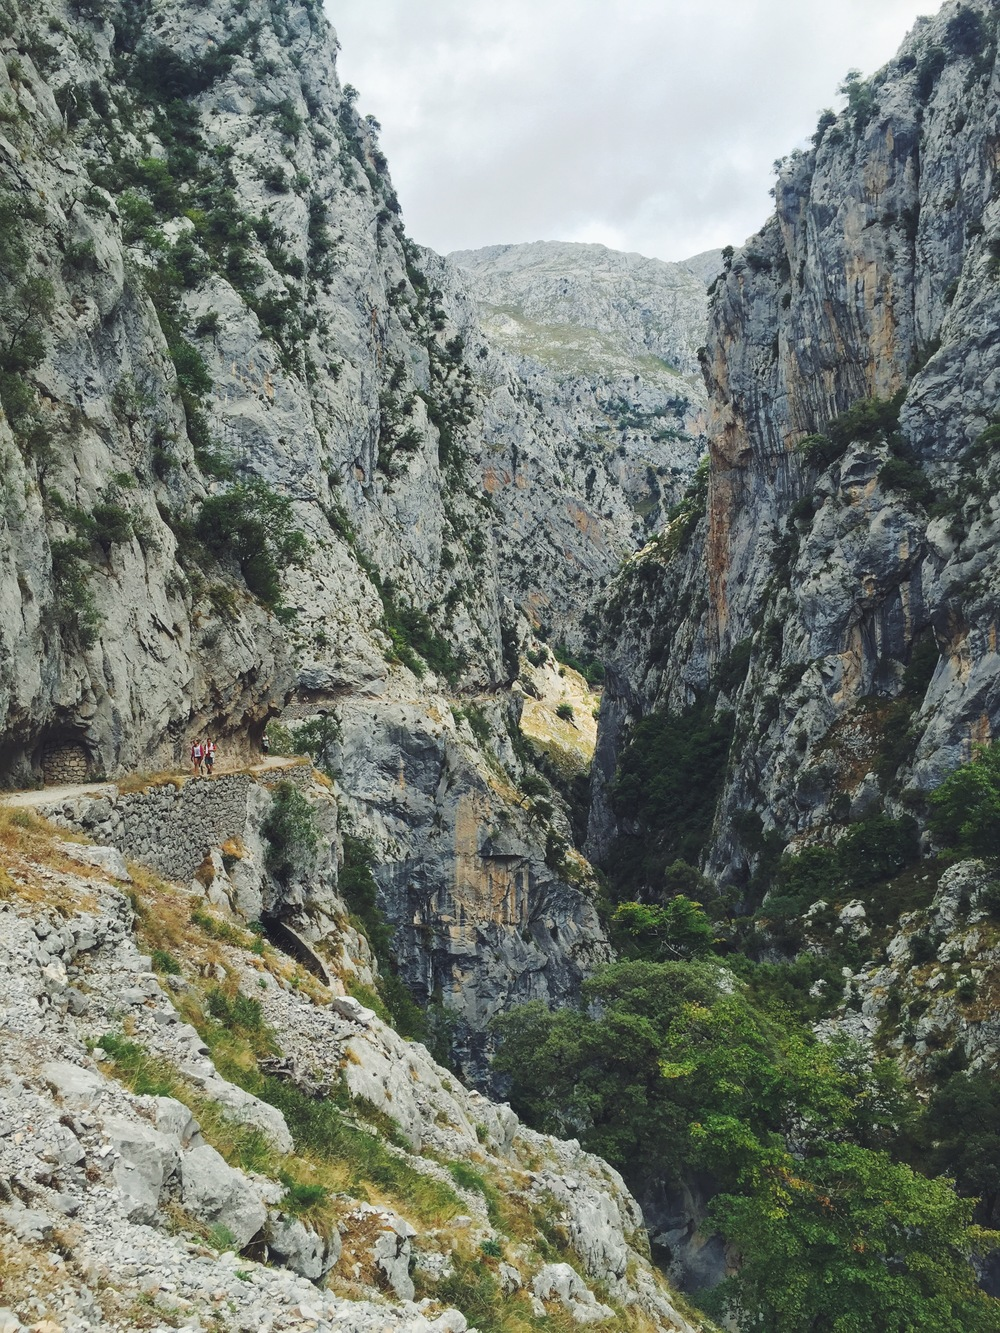 Ruta del Cares in Picos de Europa. Feasible trail with stunning views. The beautiful mountains of Asturias, Spain. Traveling like a local with a Photo Travel Guide.